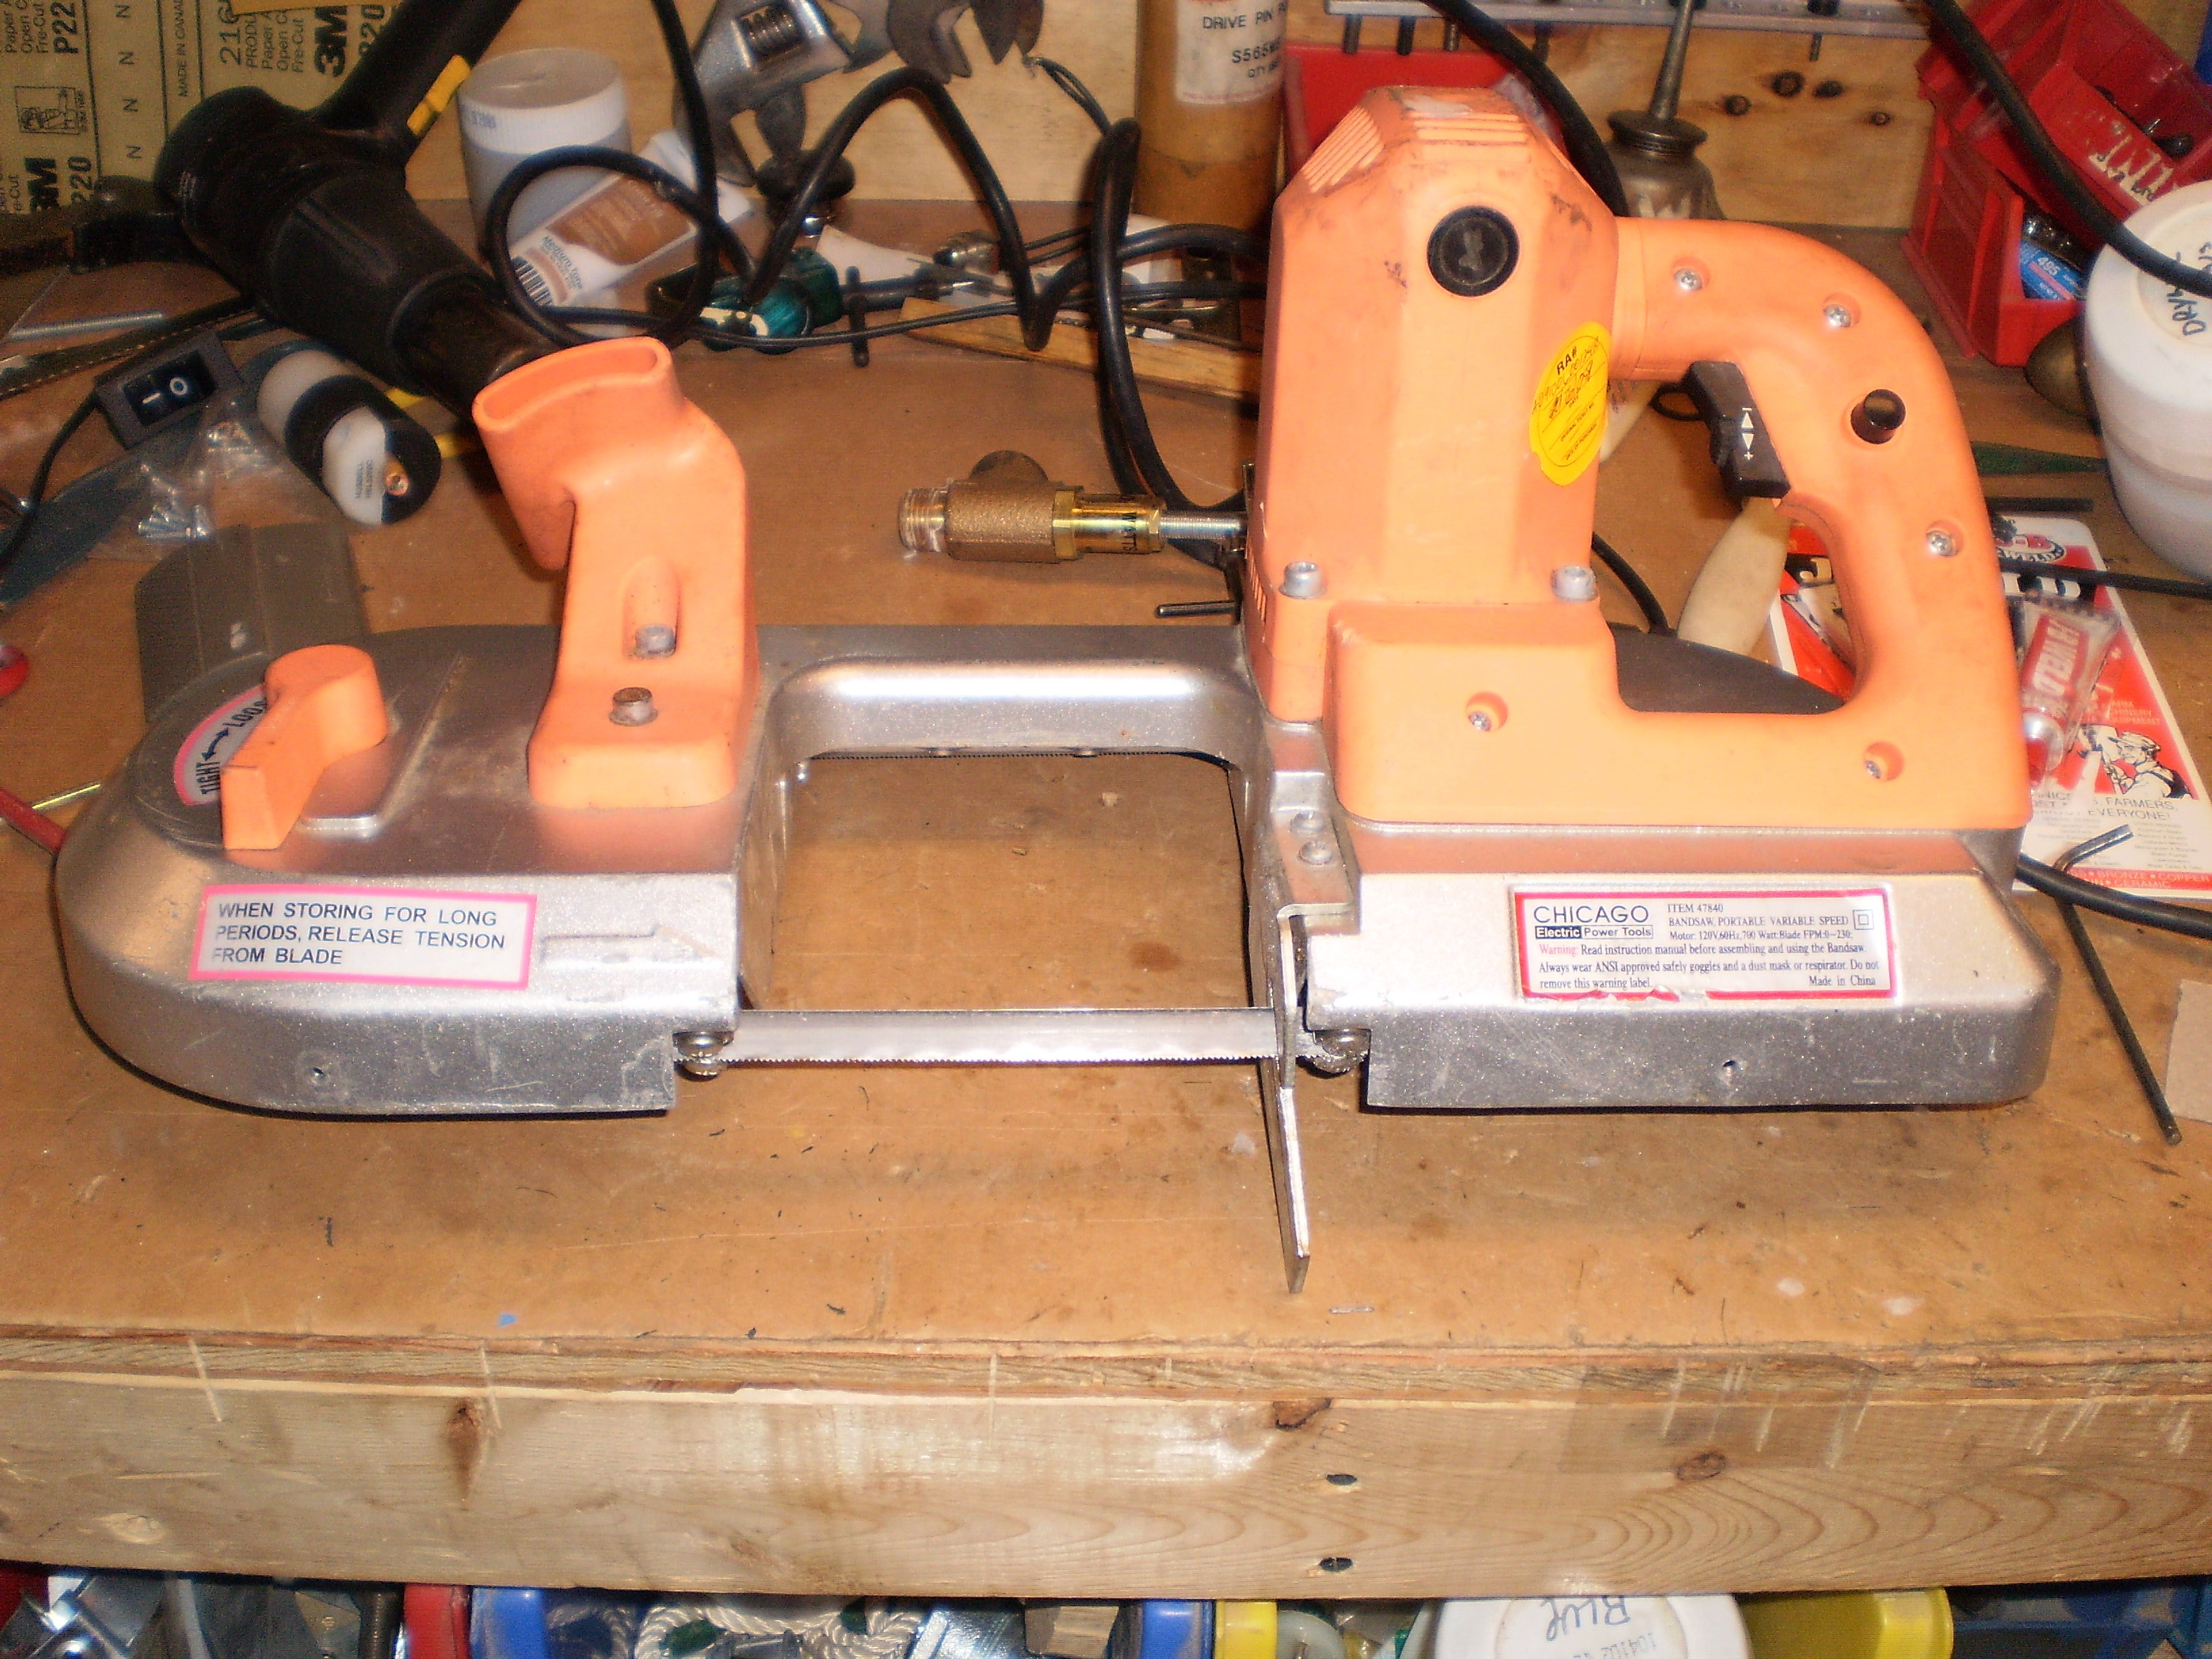 How To Repair The Drive Wheels On A Chicago Electric Portable Band Saw 5 Steps Instructables